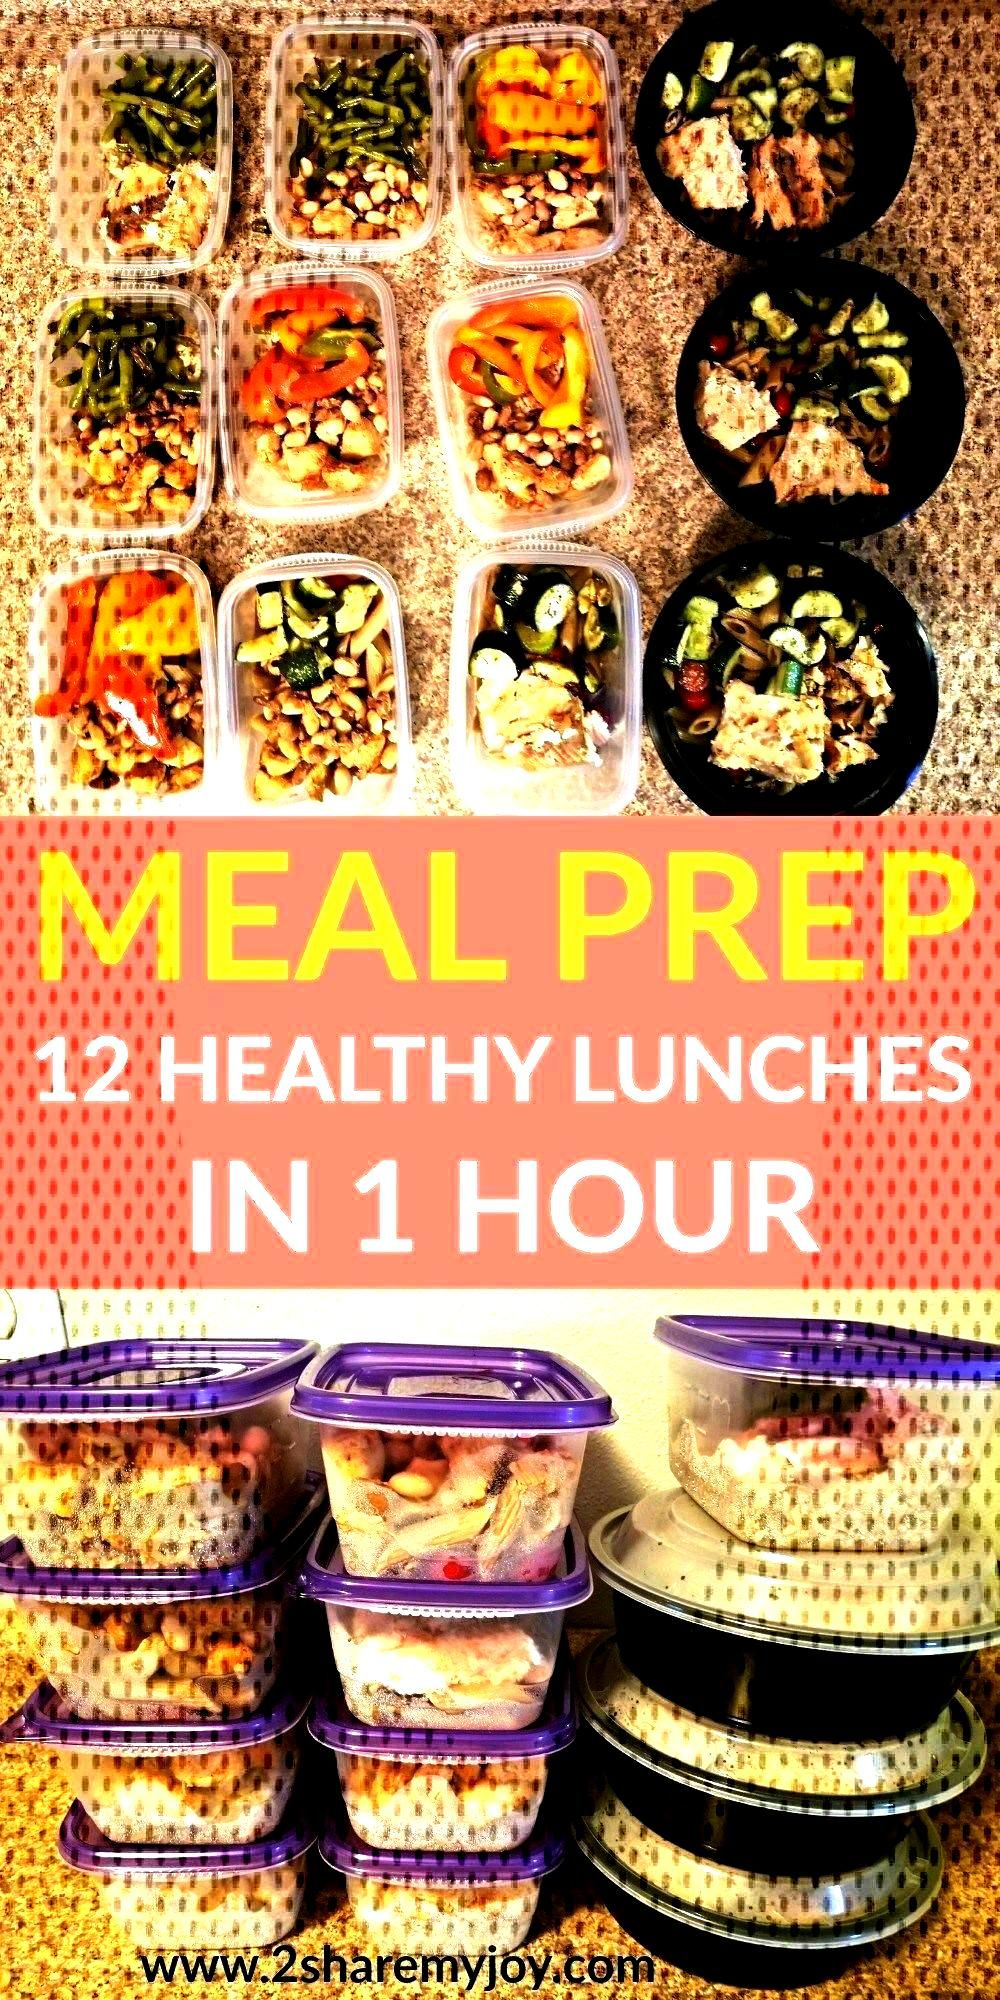 Meal Prep: 12 Healthy Lunches in 1 Hour Meal Prep: 12 Healthy Lunches in 1 Hour, Meal Prep: 12 Heal